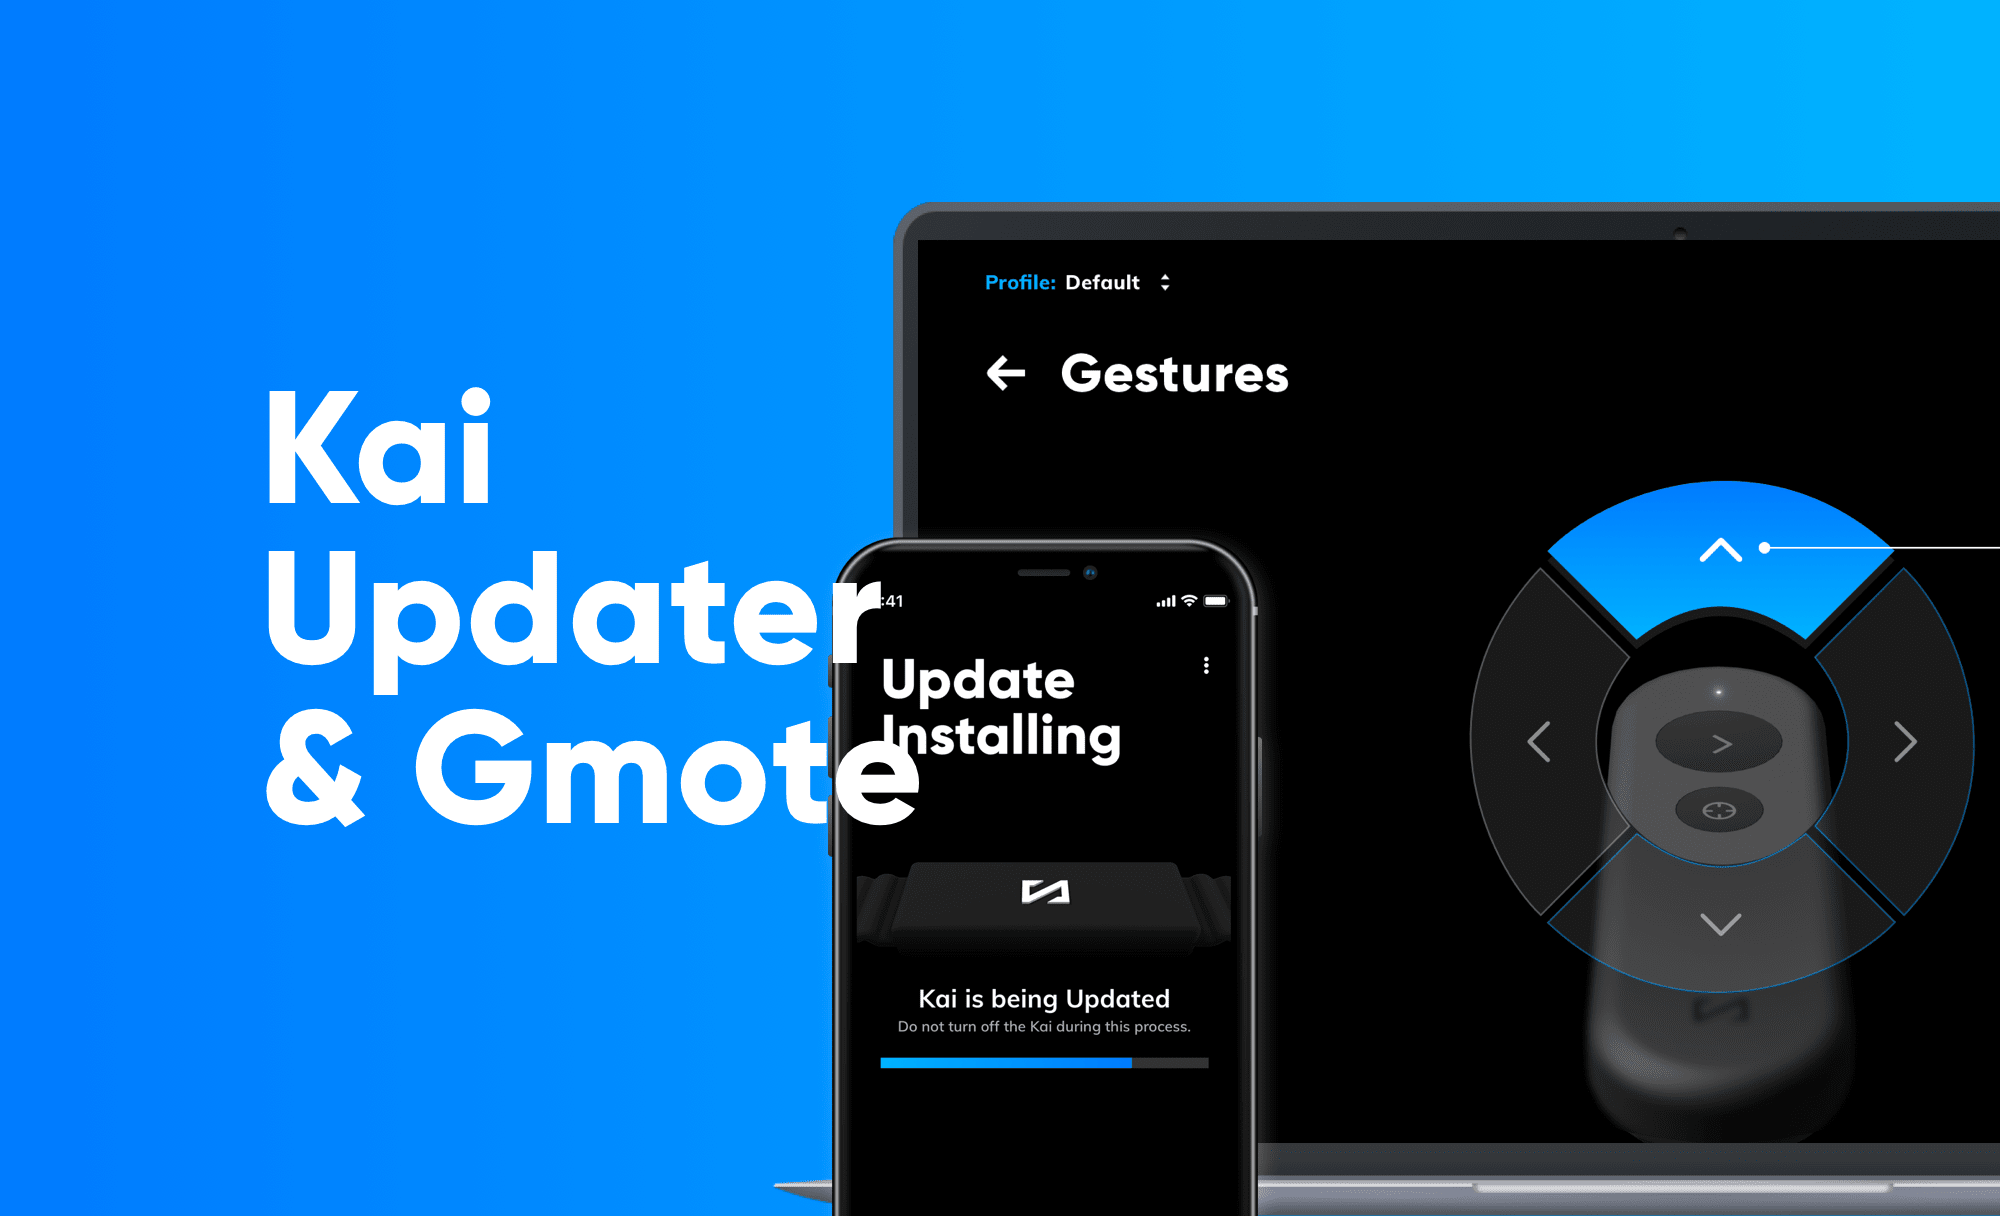 Kai Updater & GMote Control Center